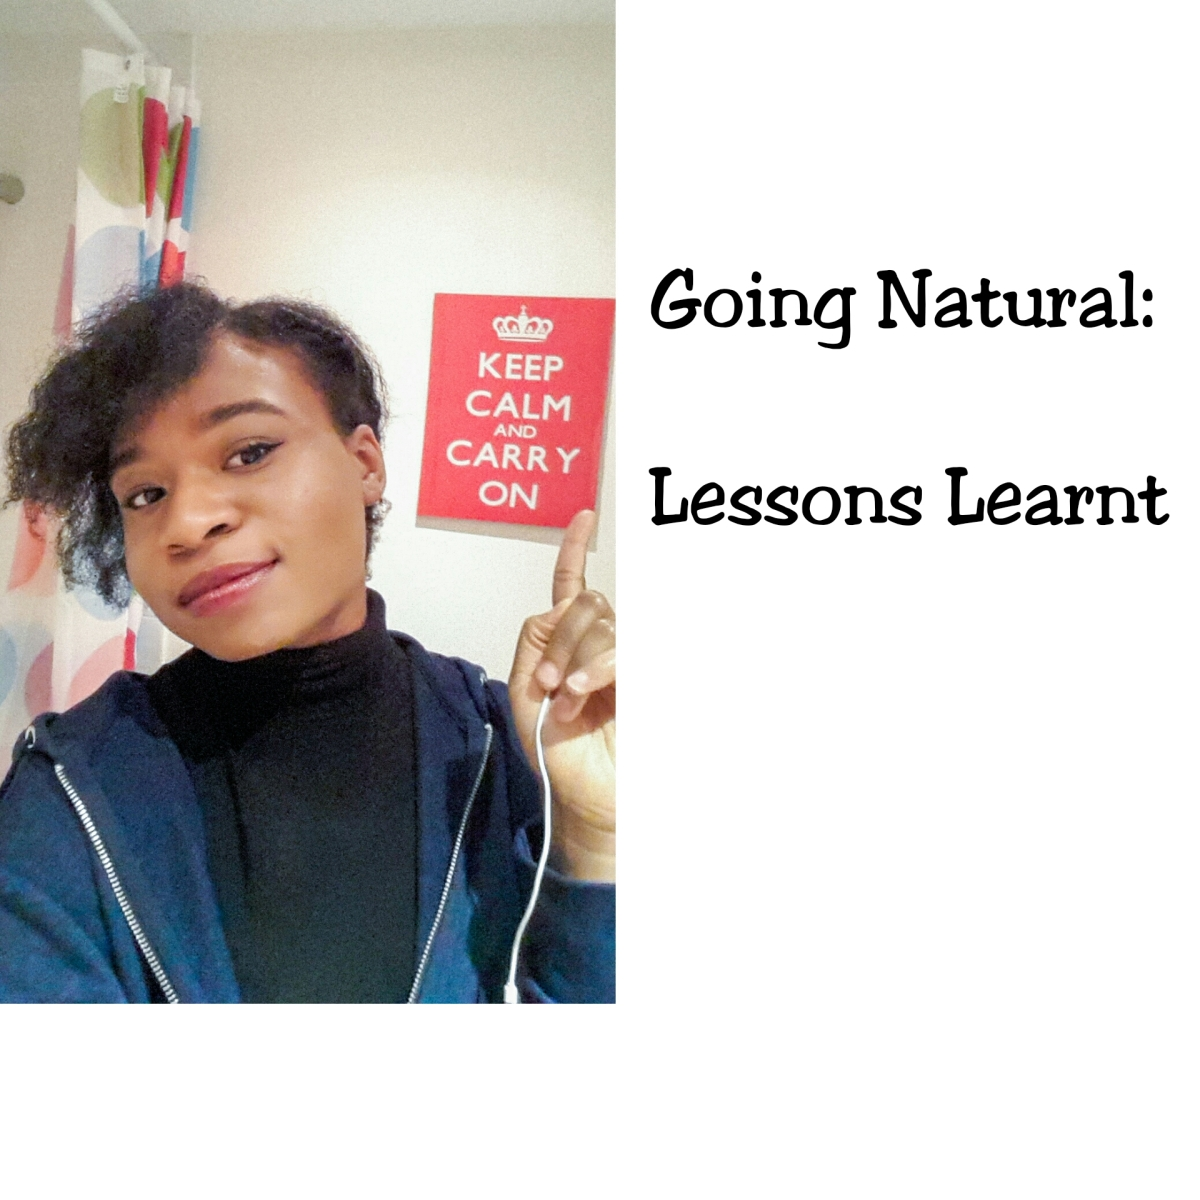 Going Natural | Lessons Learnt